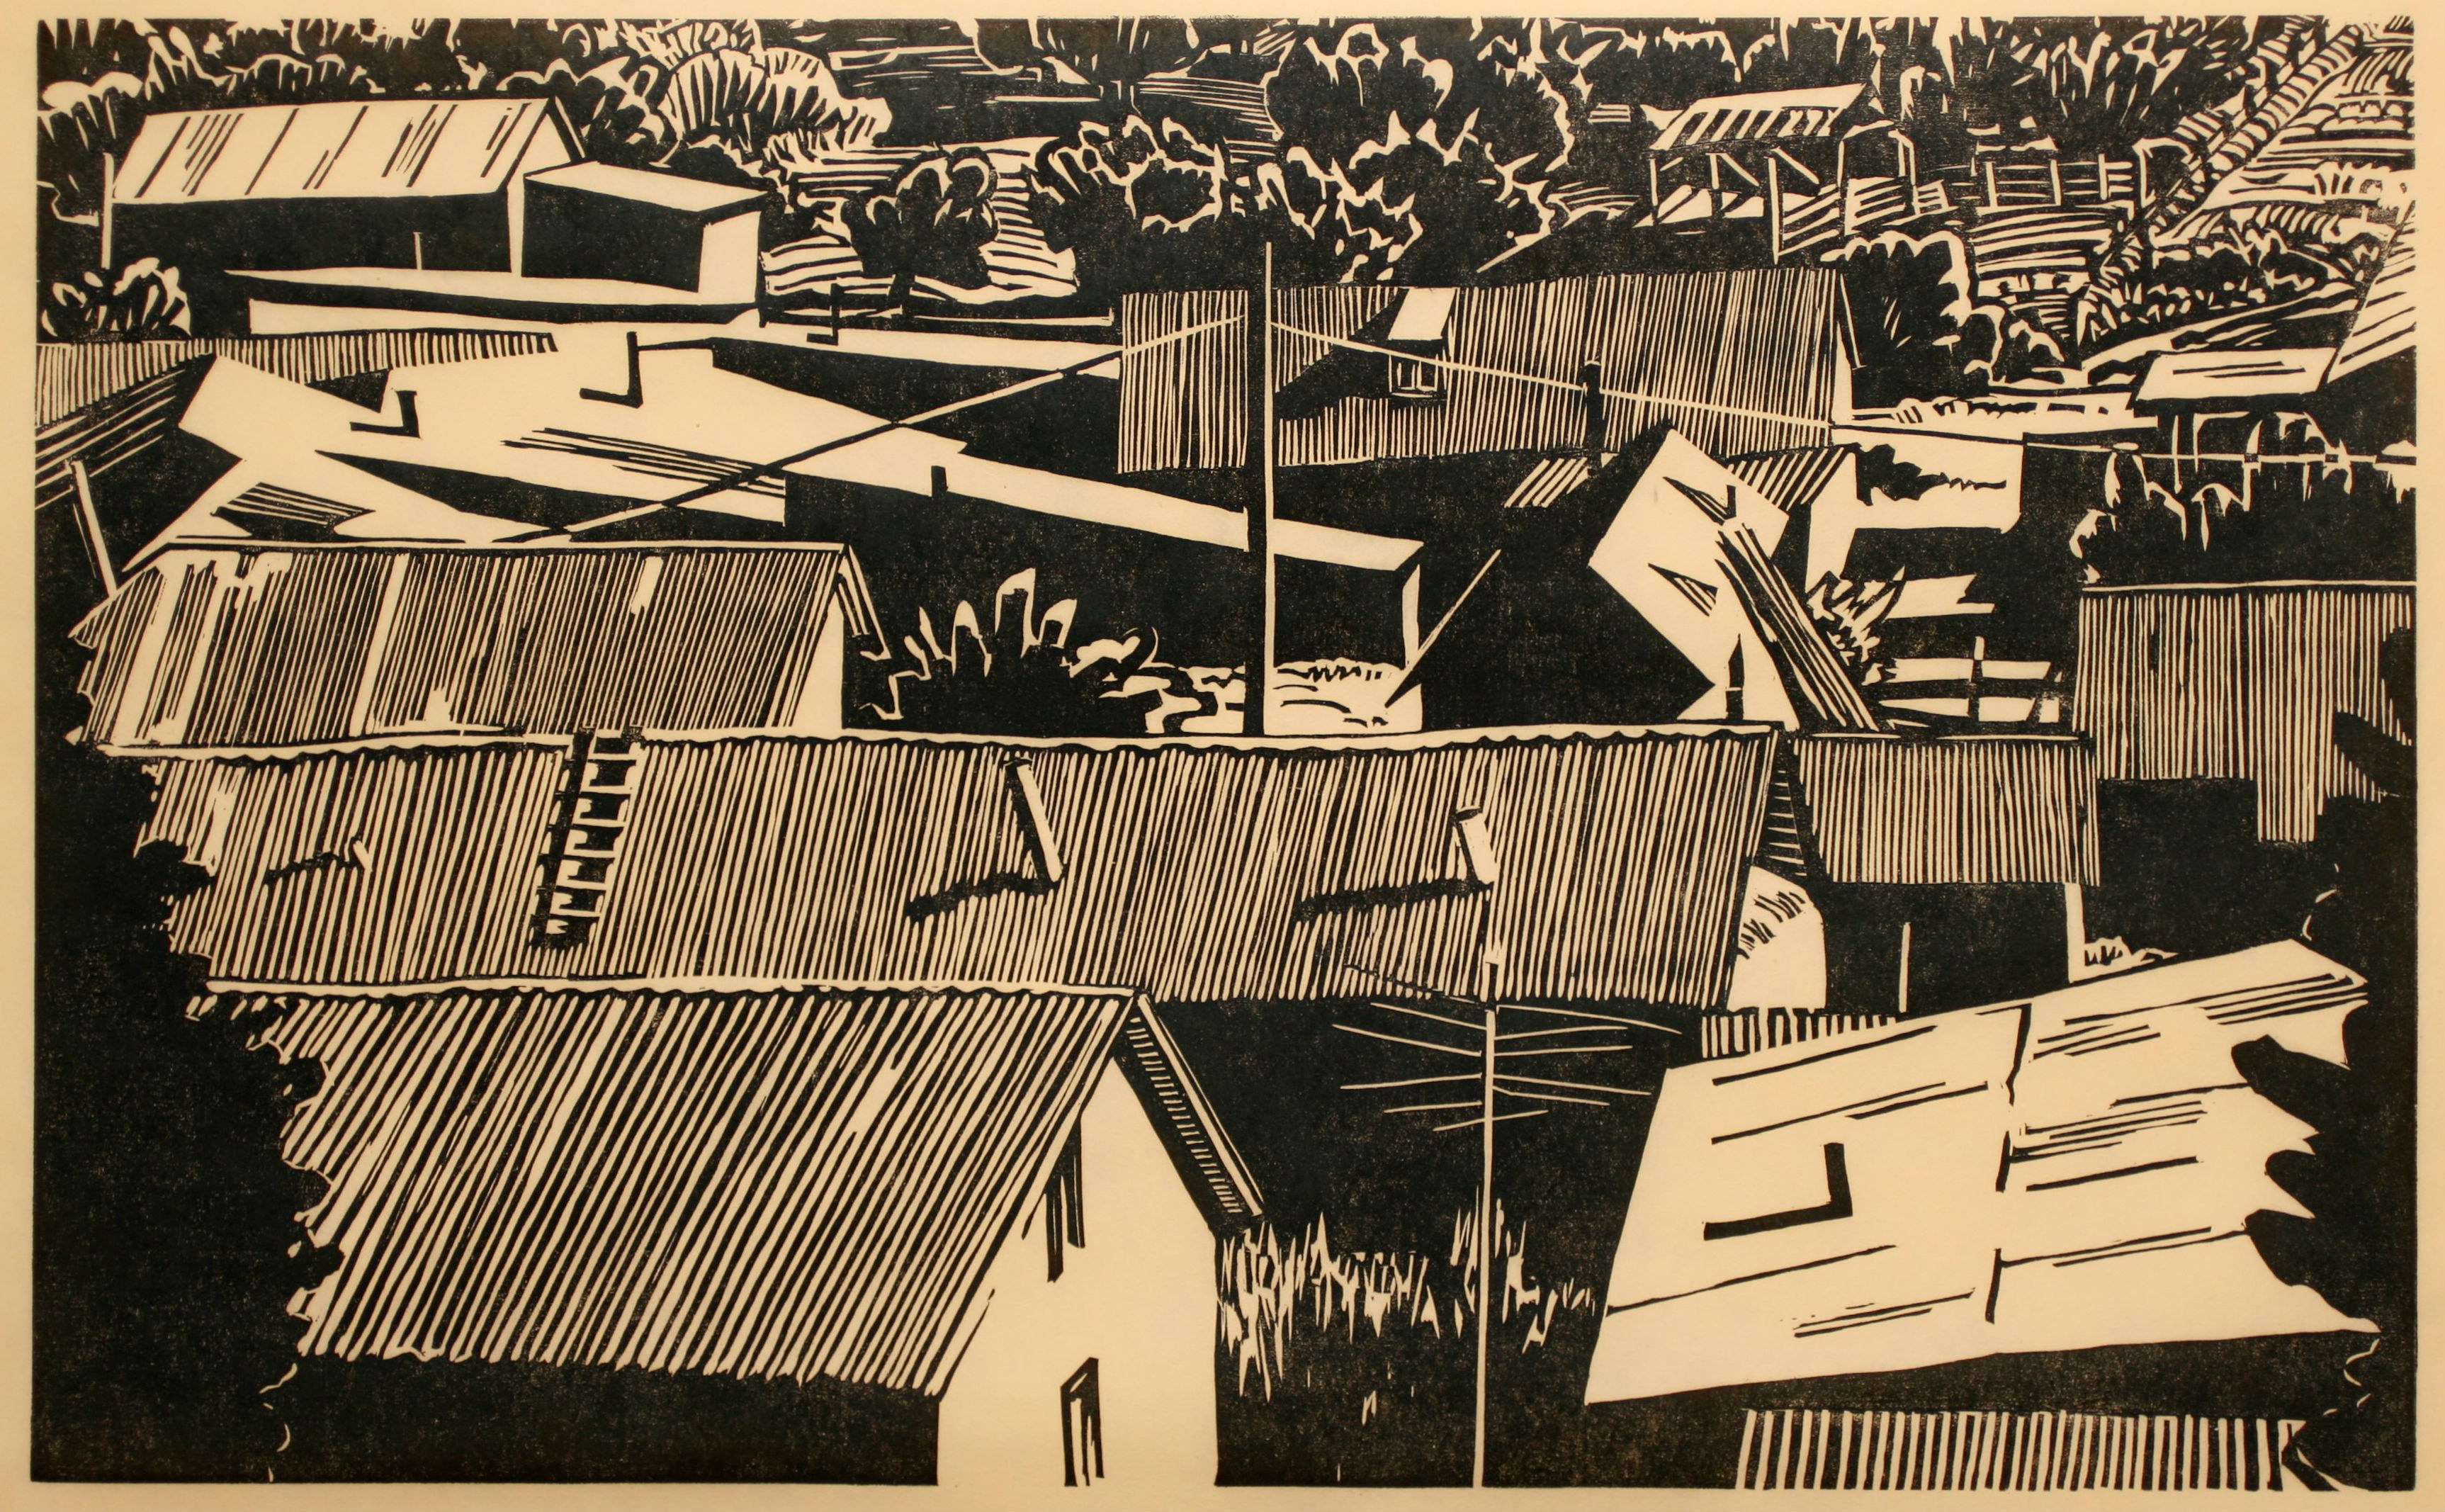 Cordova, a woodcut print by Thayer Carter, 2006. (Albuquerque Museum Collection)